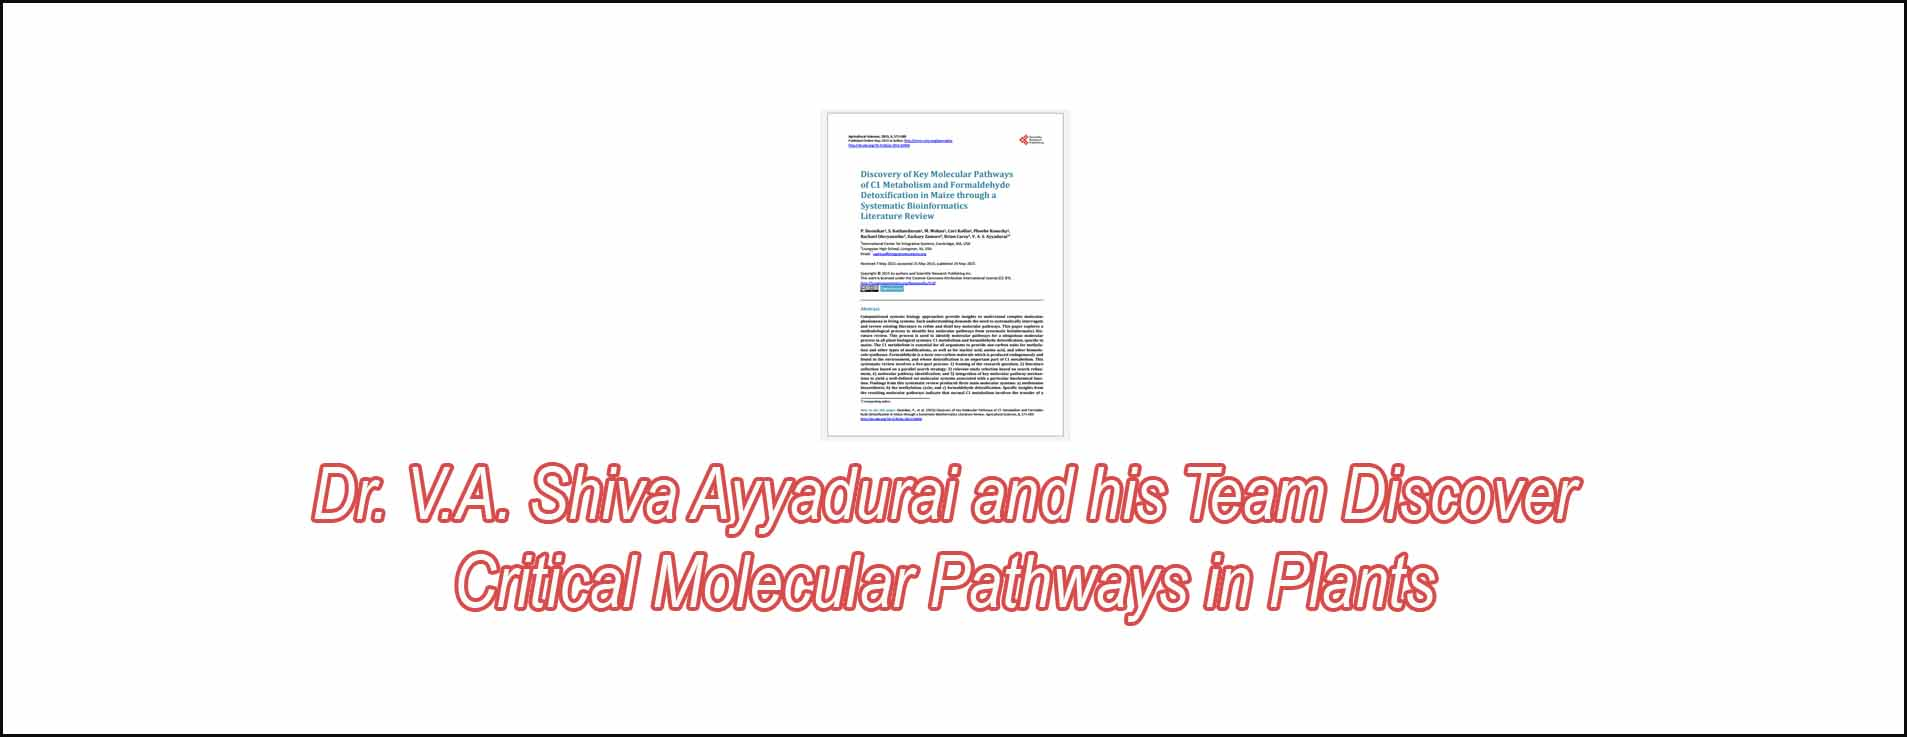 Dr. V.A. Shiva Ayyadurai And His Team Discover Critical Molecular Pathways In Plants